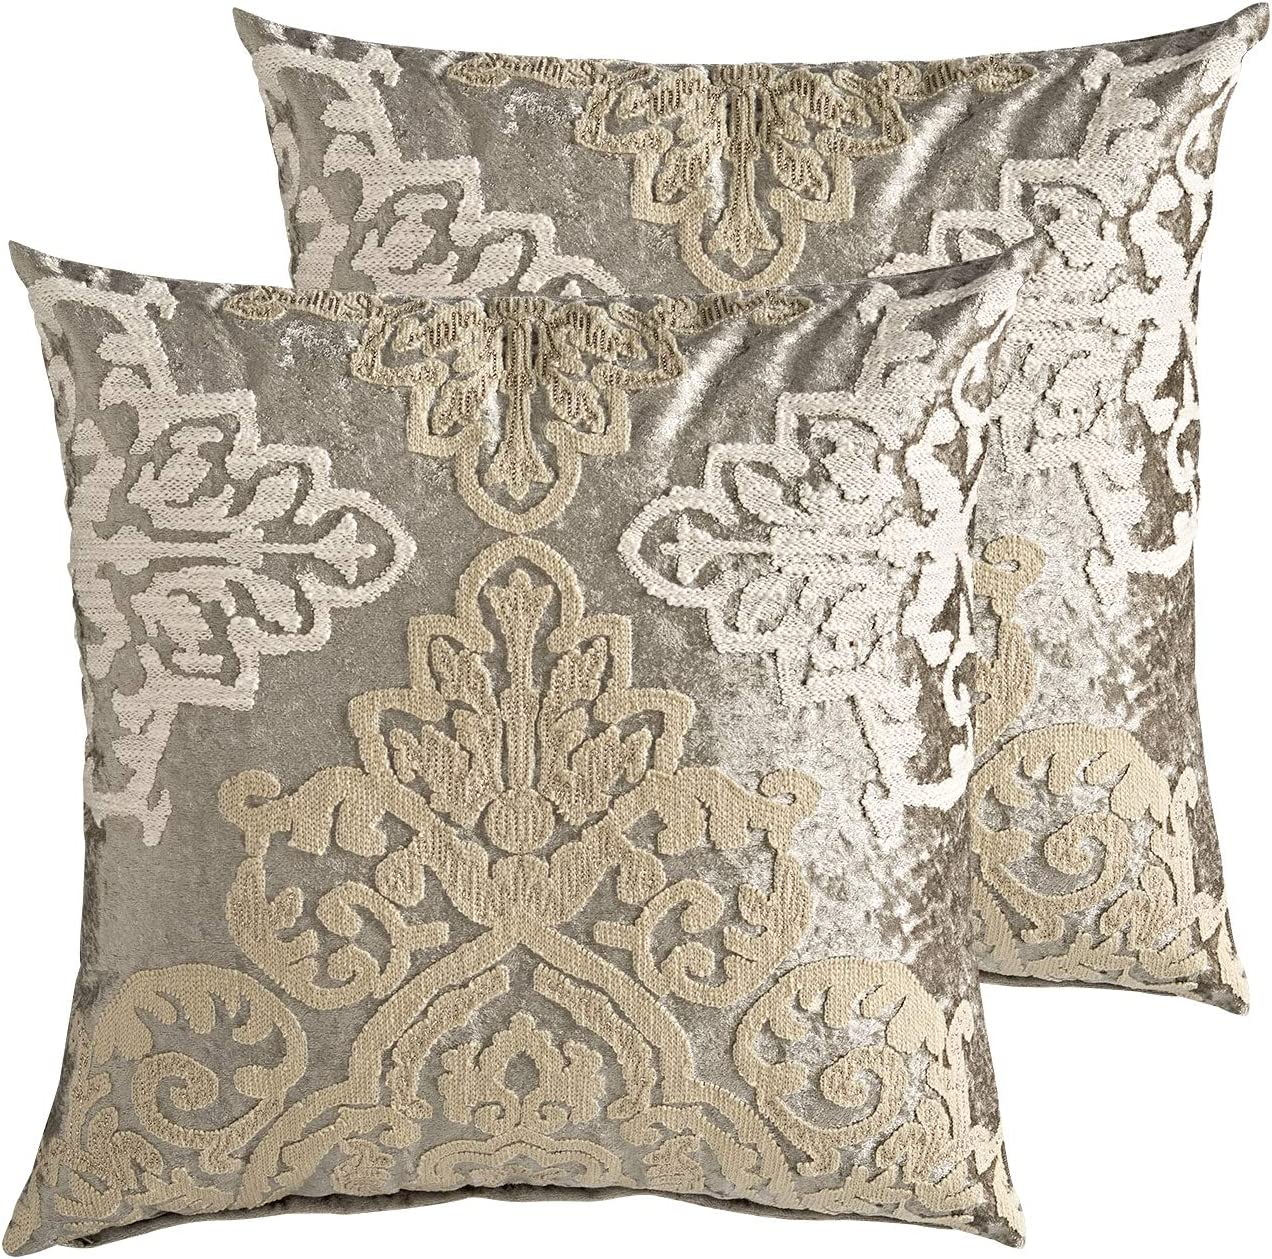 MOTINI Velvet Embroidered Throw Pillow Covers Grey and Beige with Champagne Gold Accent Damask Floral Luxury Boho Square Decorative Cushion Covers Pillow Cases for Sofa Couch Bed Chair,18x18, 2 Pack